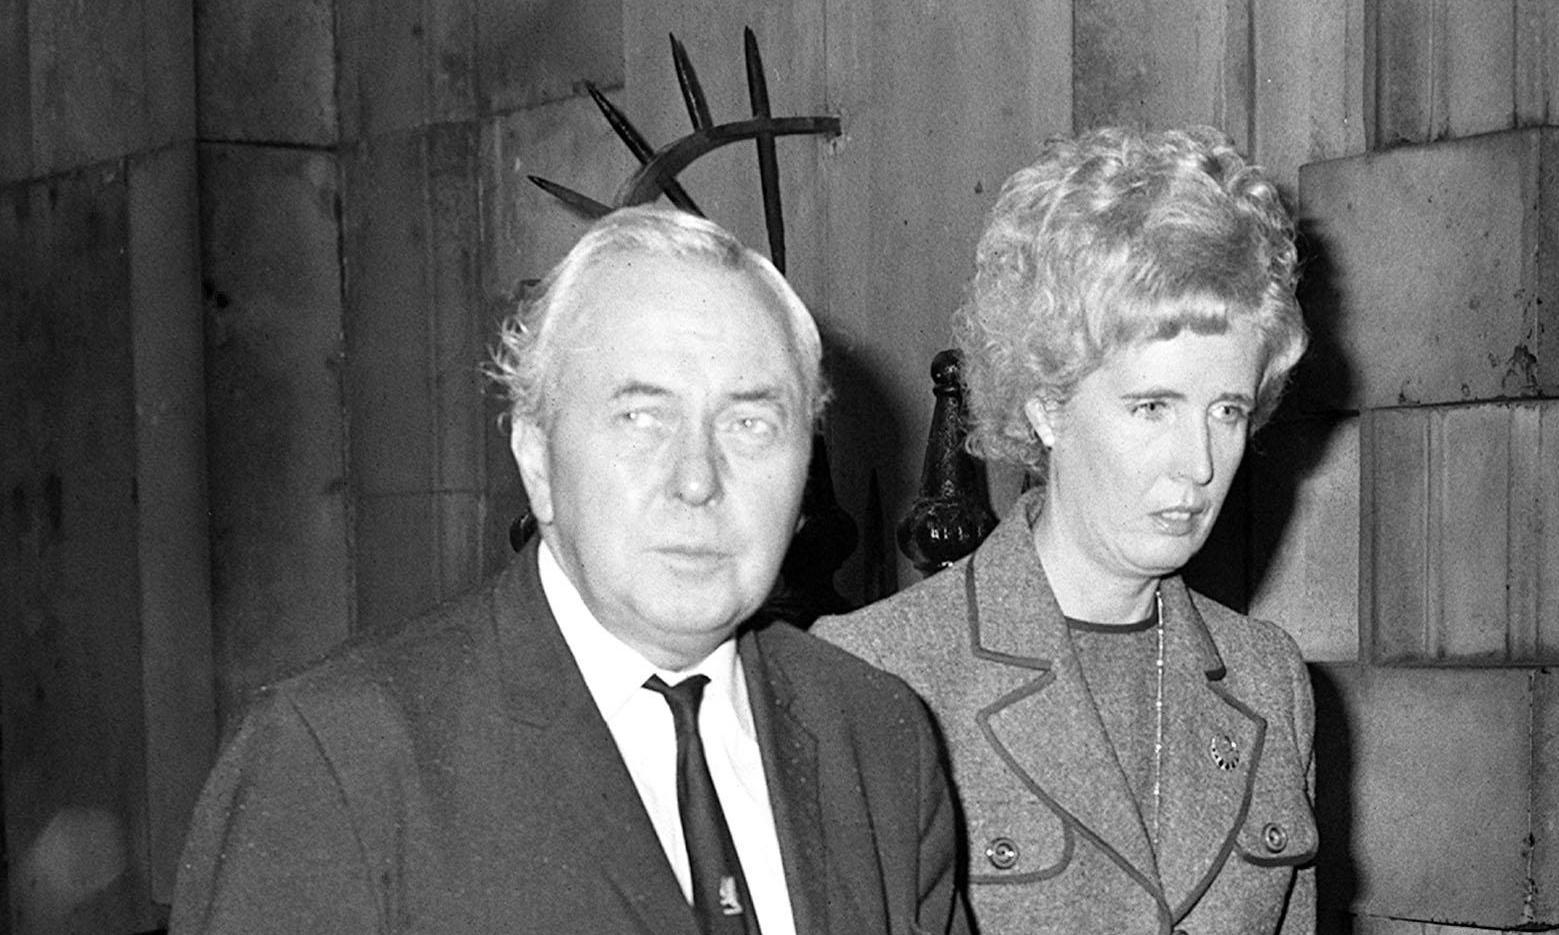 Lady Falkender, Harold Wilson's righthand woman, dies, aged 86